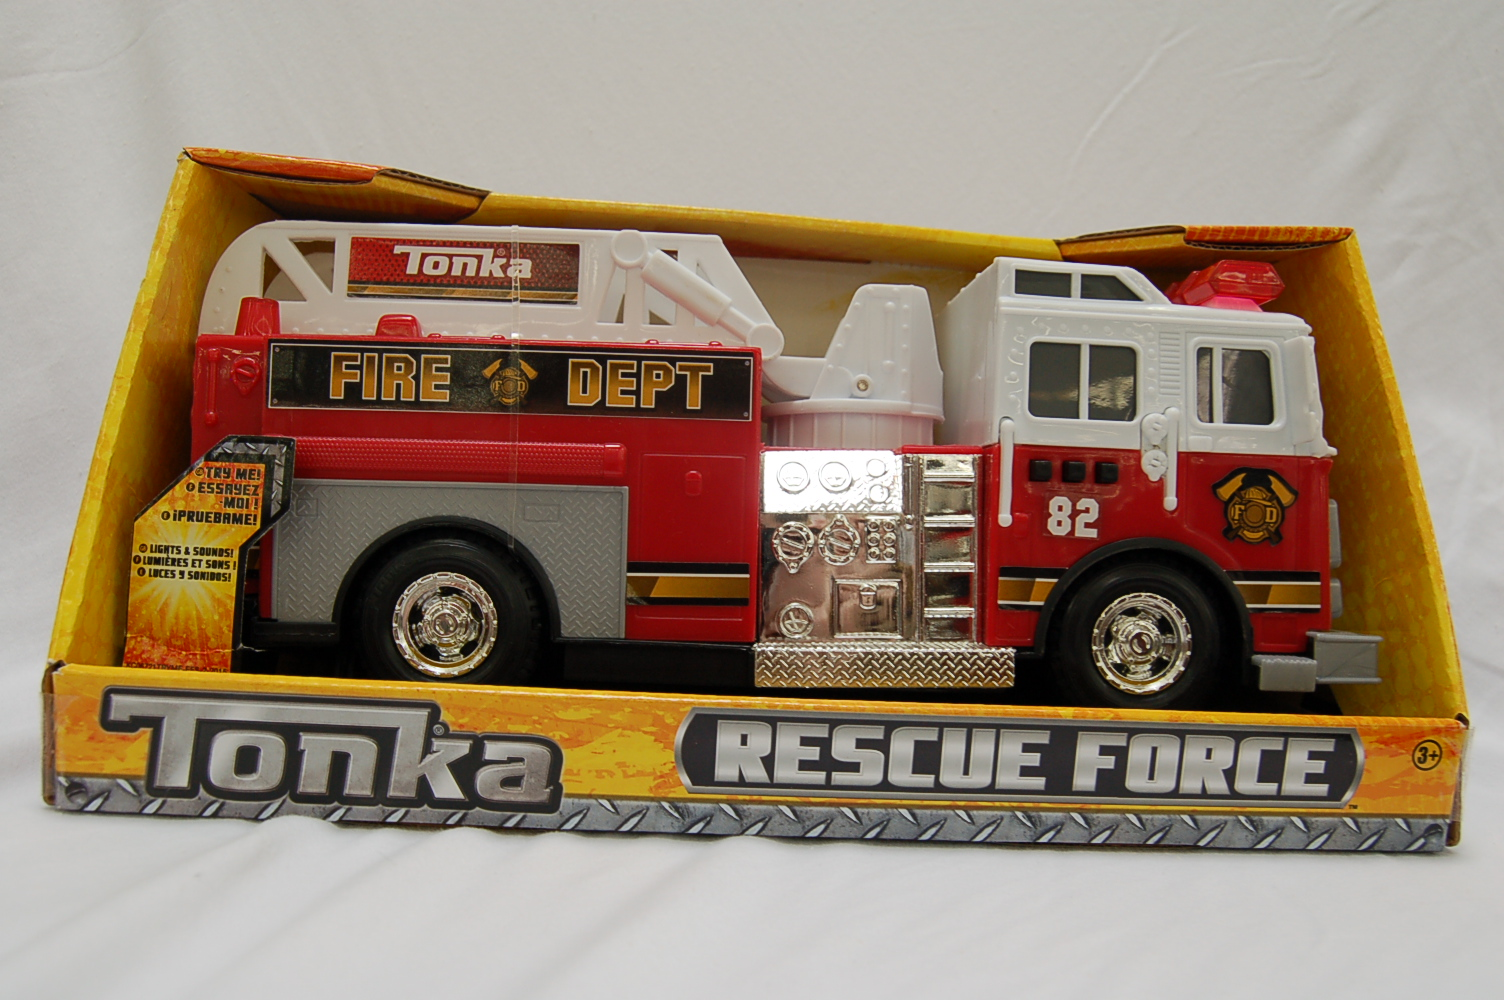 Tonka Rescue Force Lights and Sounds 12-inch Ladder Truck Fire Dept 82 by Generic